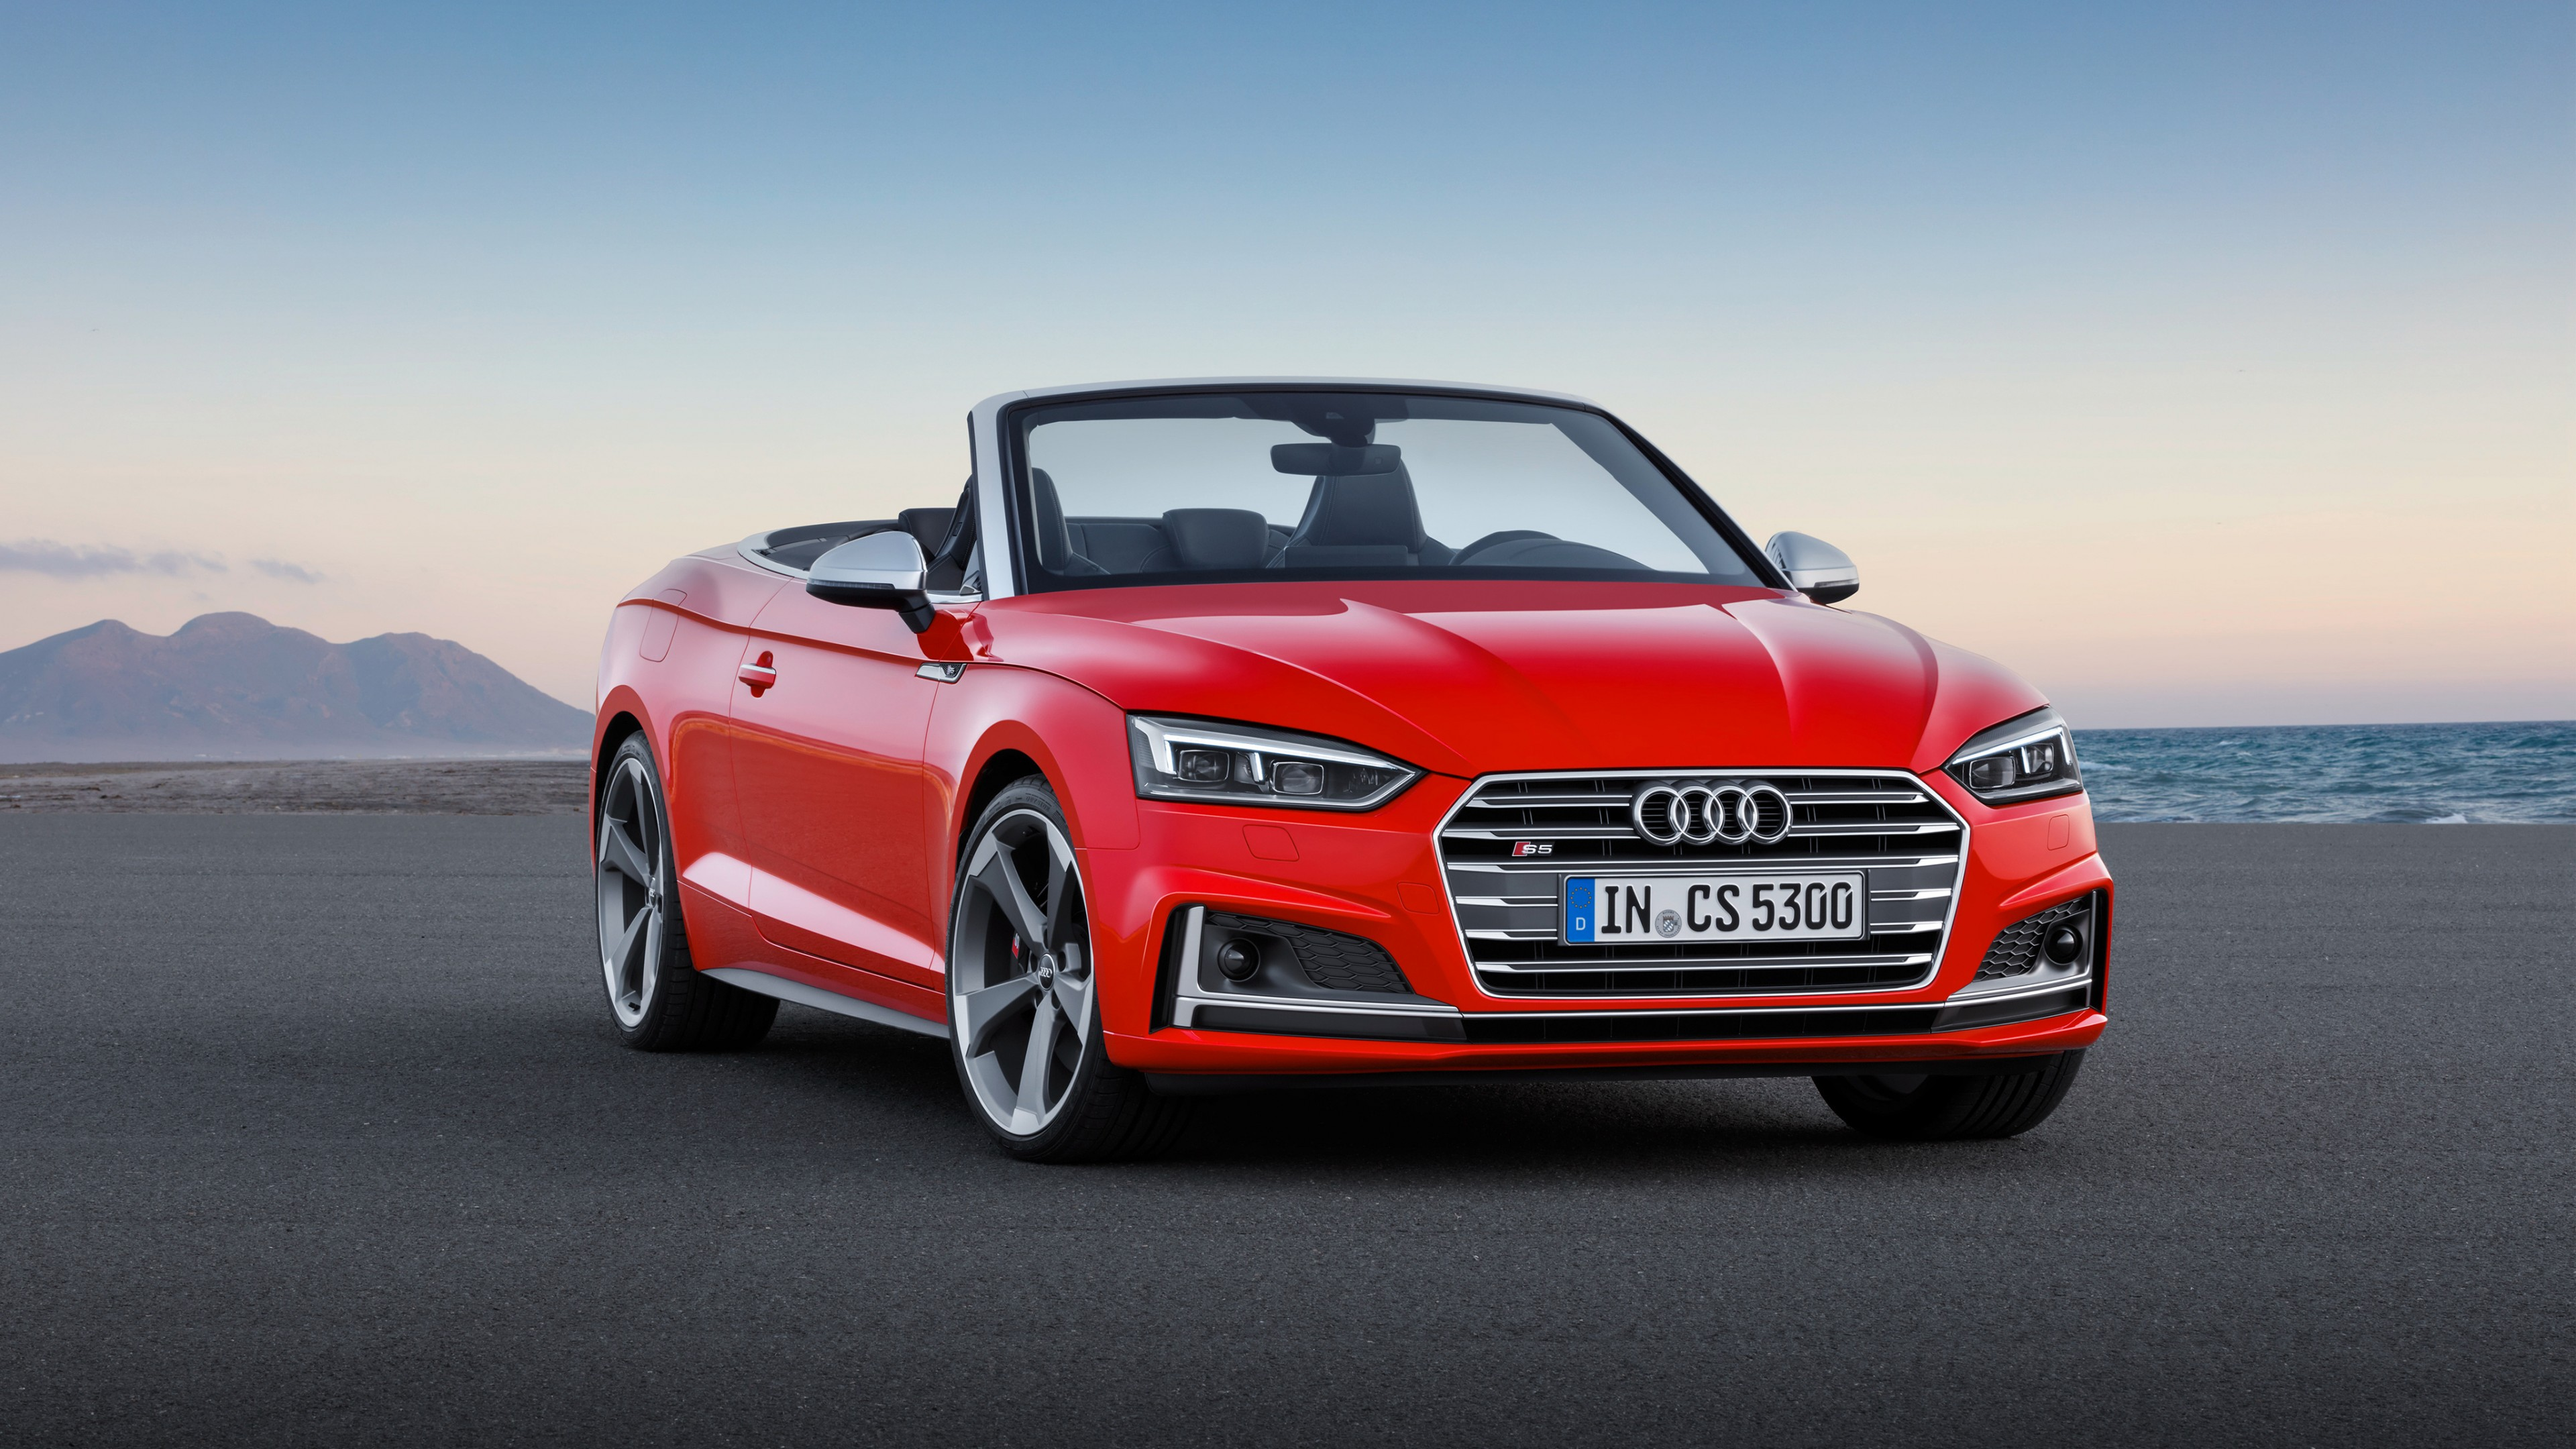 2017 audi s5 cabriolet 3 wallpaper hd car wallpapers id 7470 - Car wallpapers for galaxy s5 ...